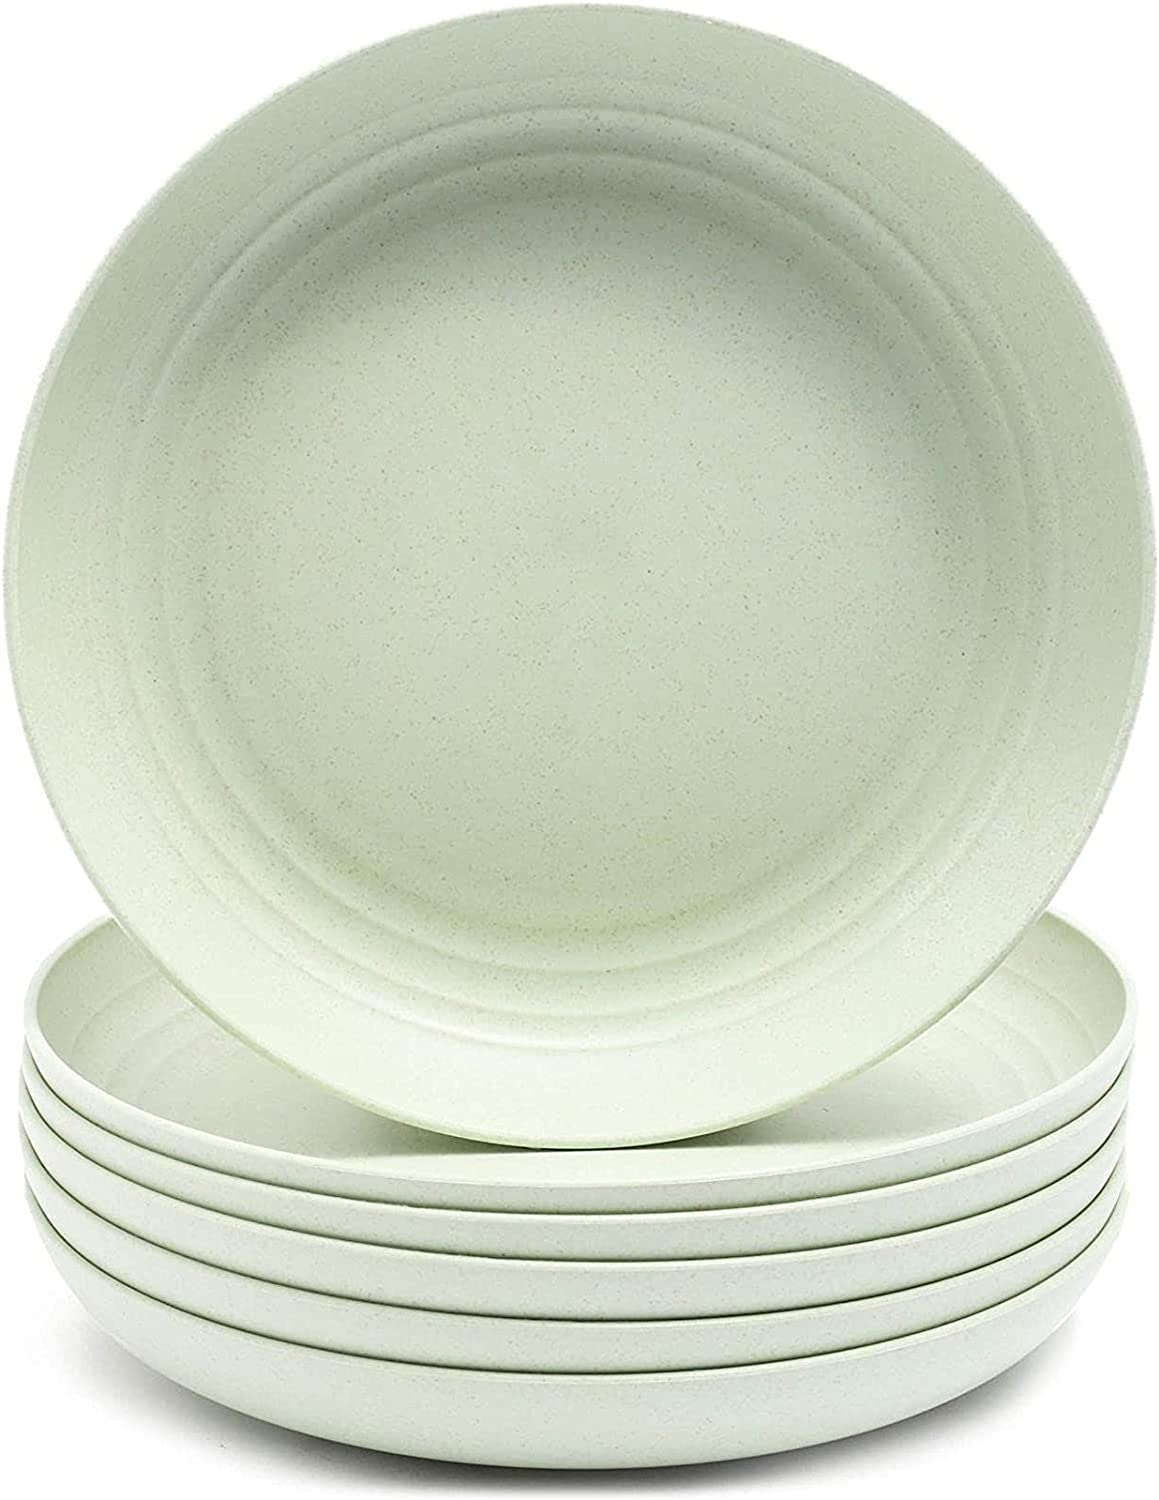 Wheat Straw Plates Unbreakable Plate 6 9 in discount Pack Green Quantity limited